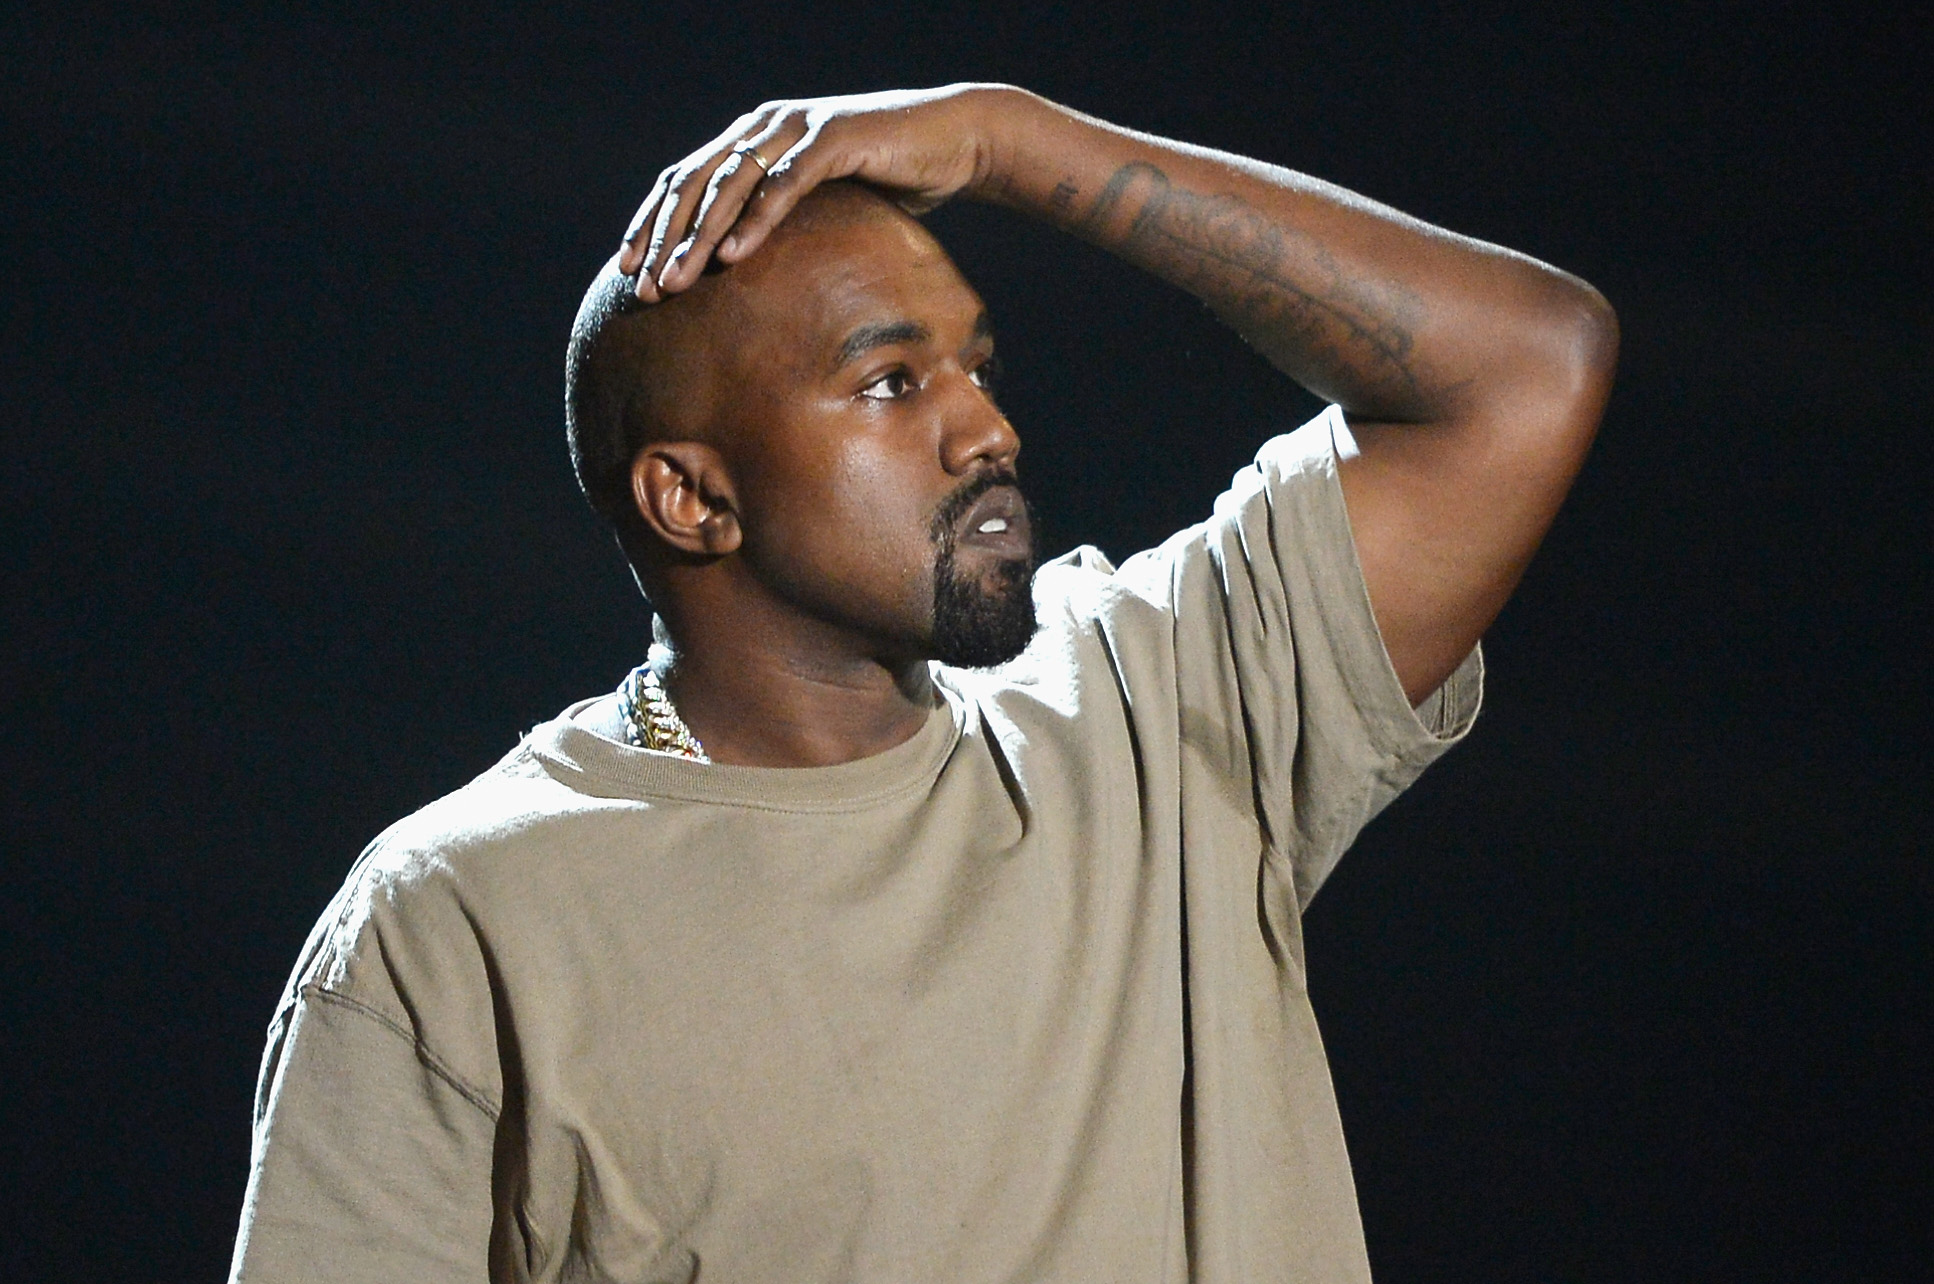 KANYE WEST LEGALLY CHANGES HIS NAME TO YE